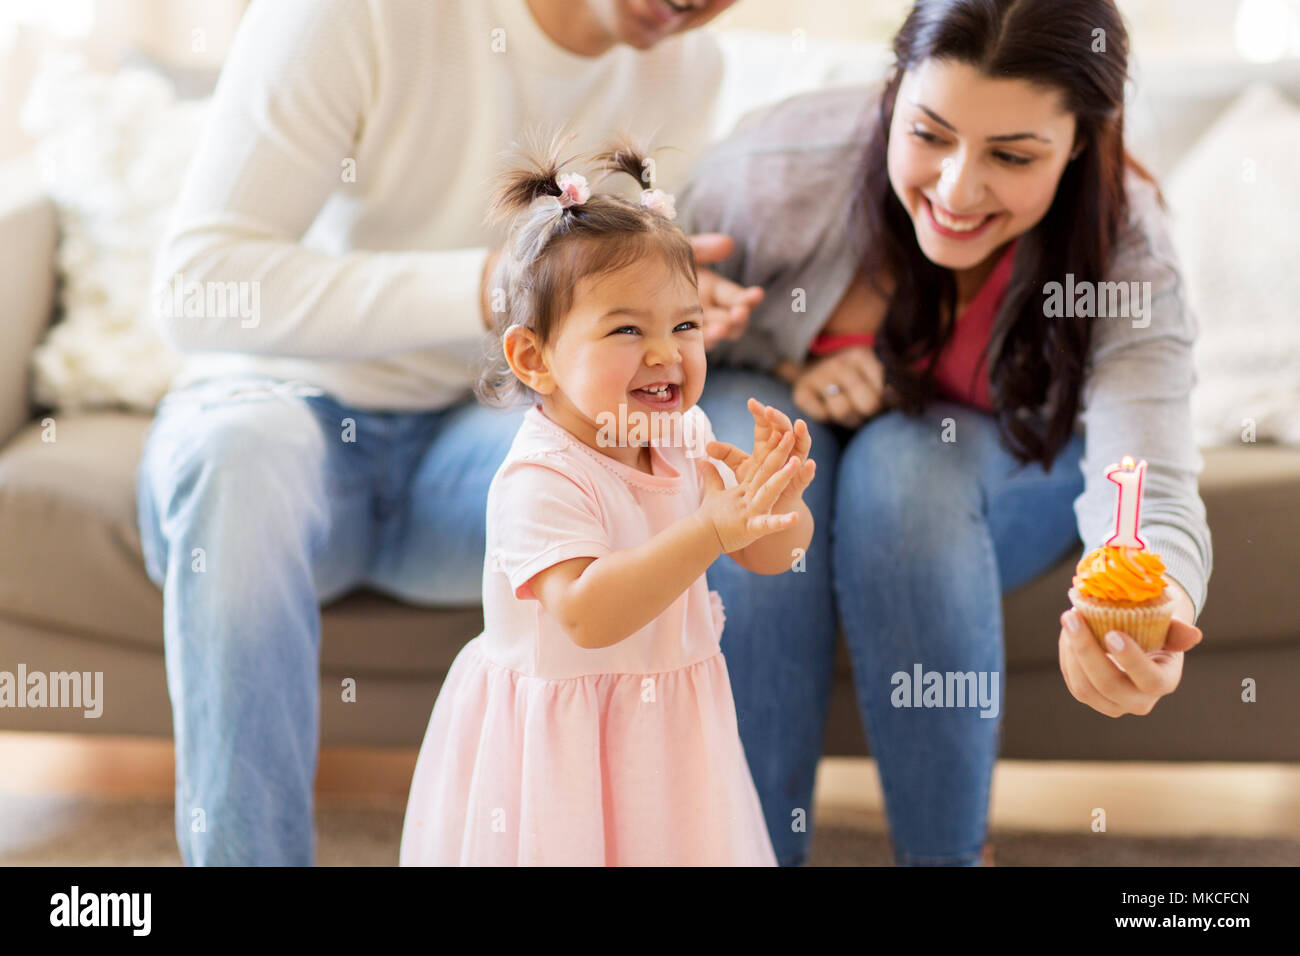 baby girl with parents at home birthday party - Stock Image